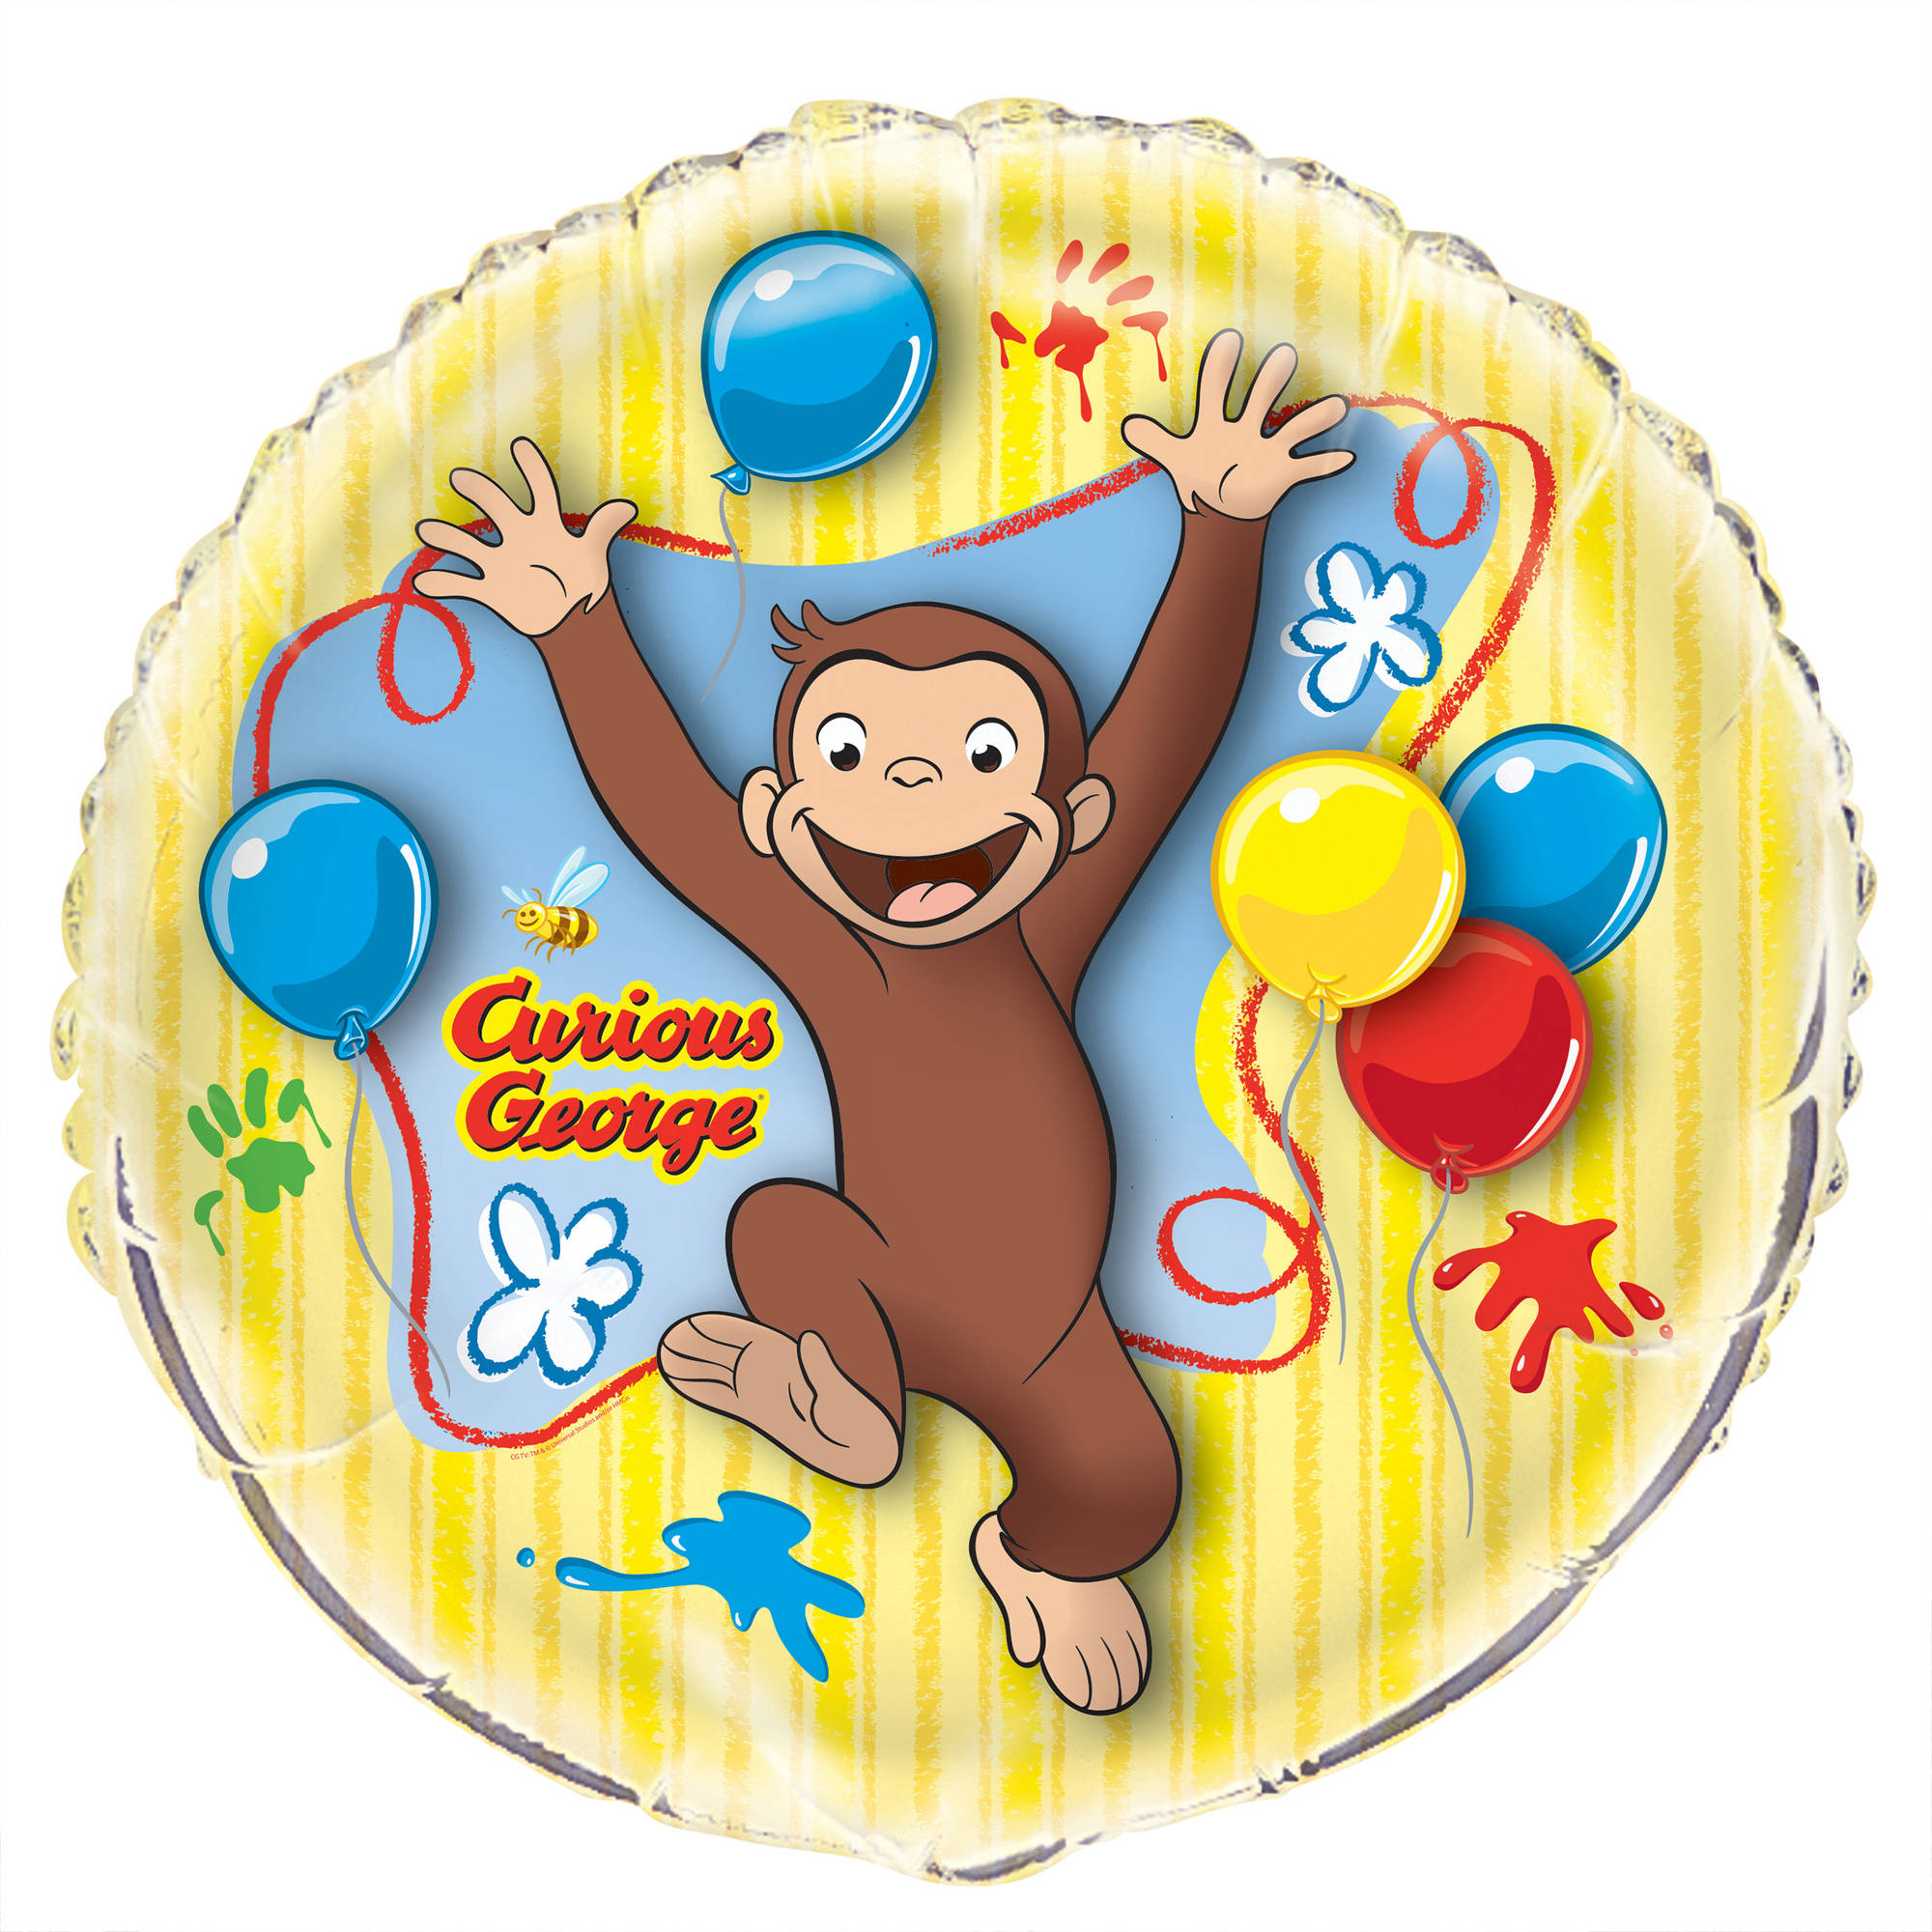 Giant Foil Curious George Balloon, 34 in, 1ct